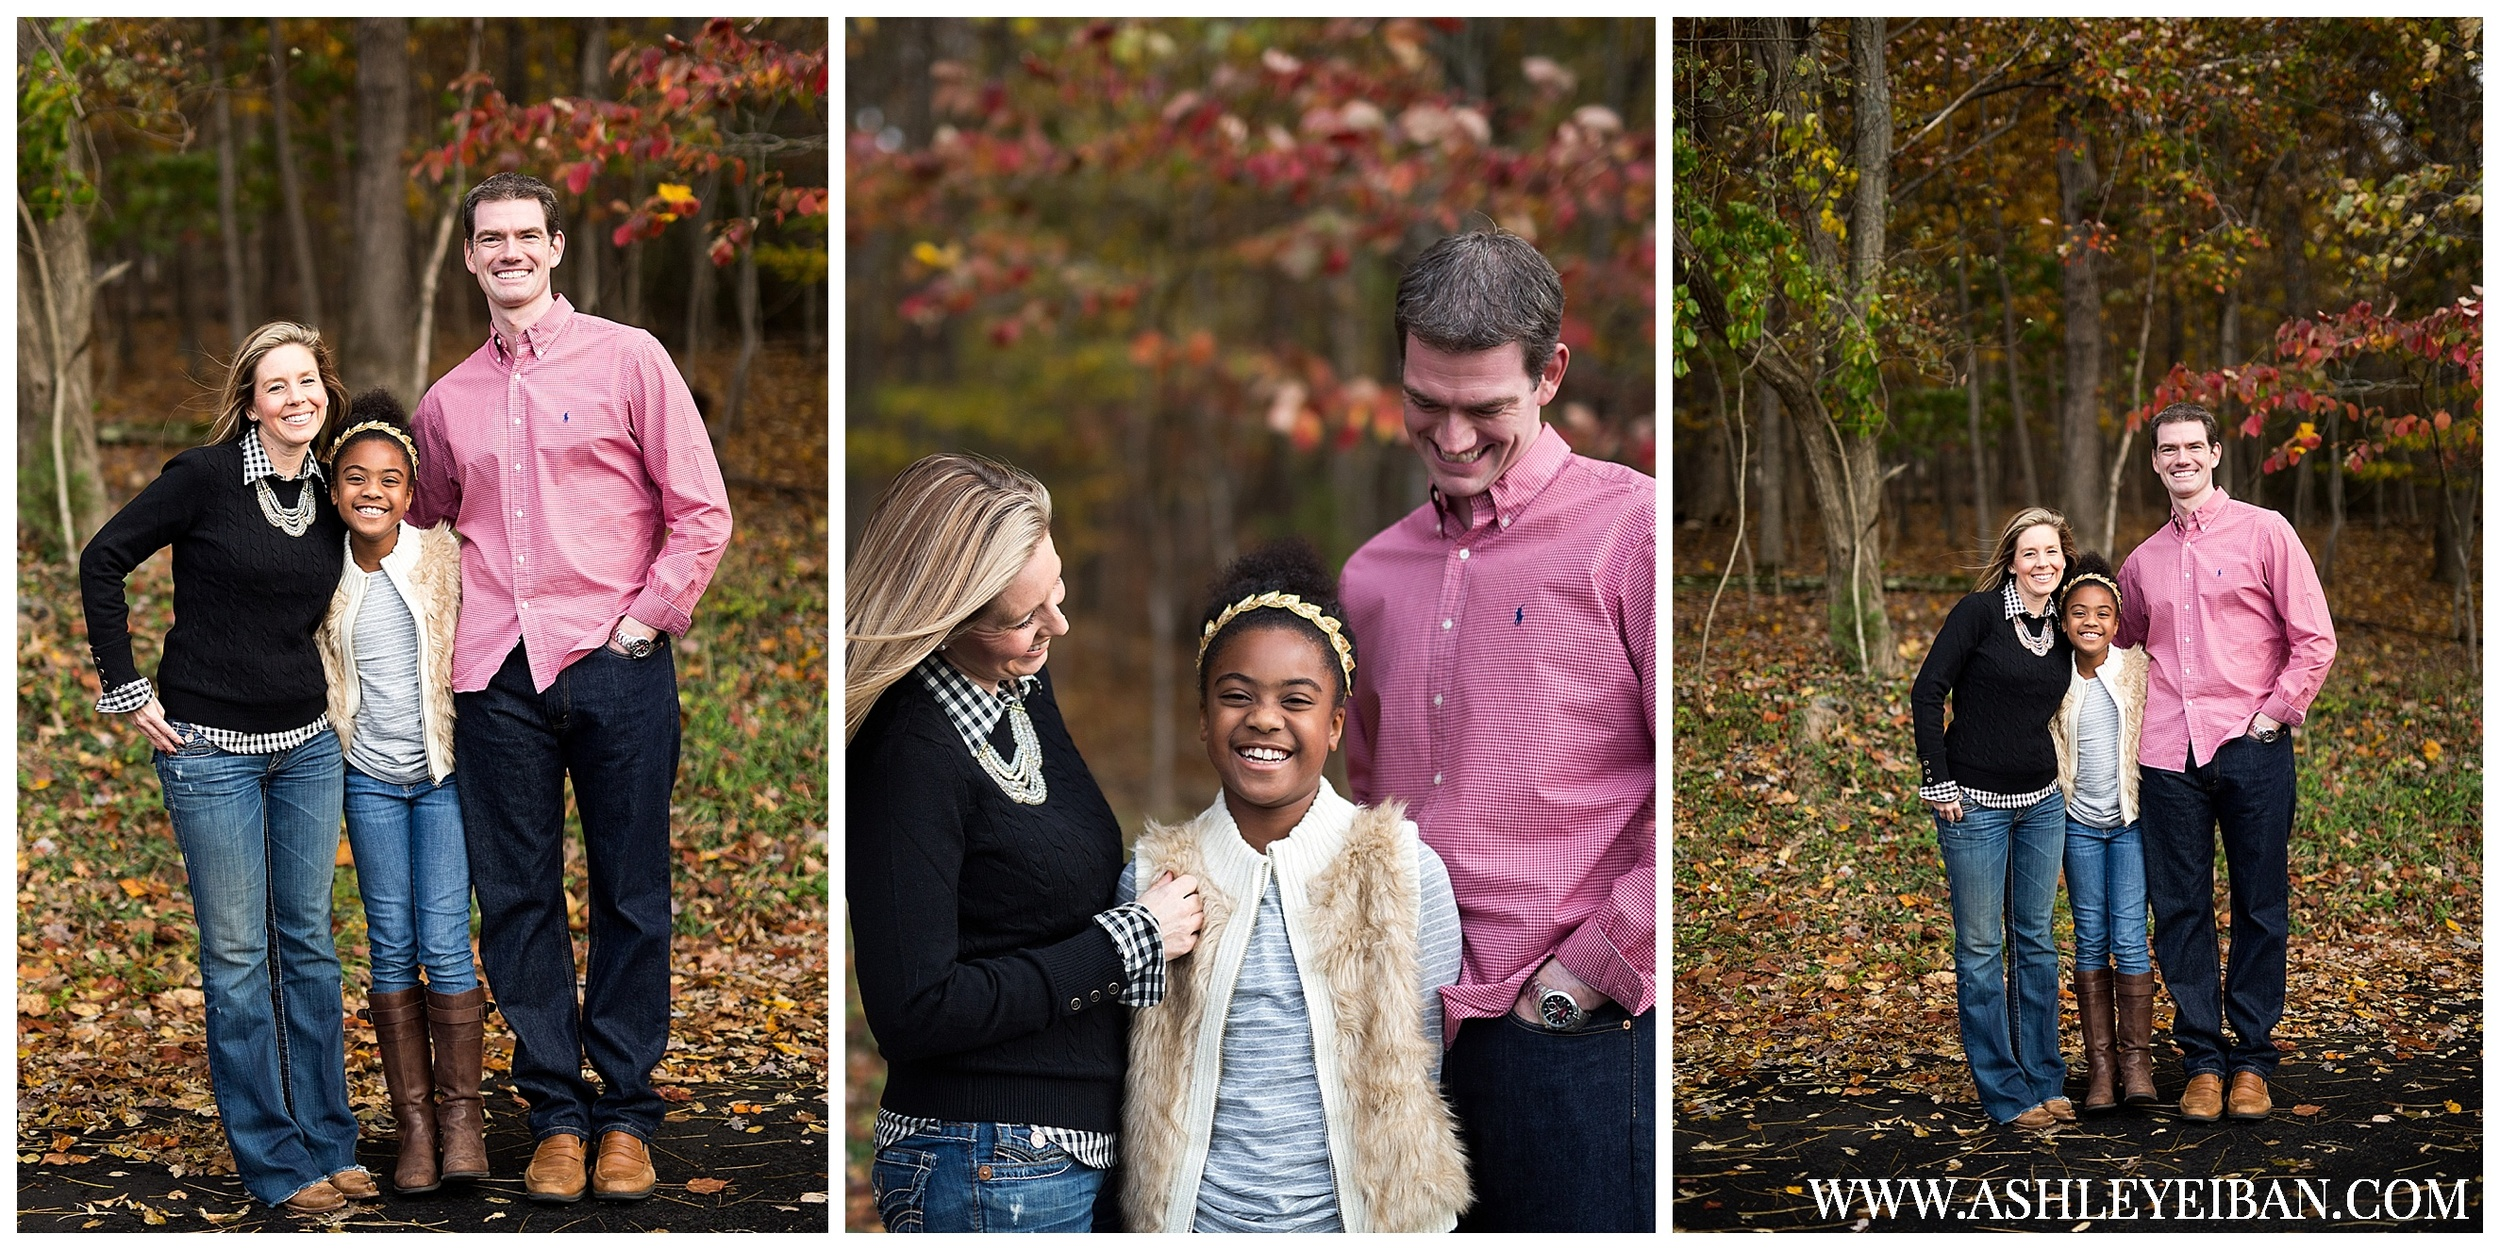 Lynchburg Virginia Family Photographer || Central VA Photographer || Ashley Eiban Photography || www.ashleyeiban.com